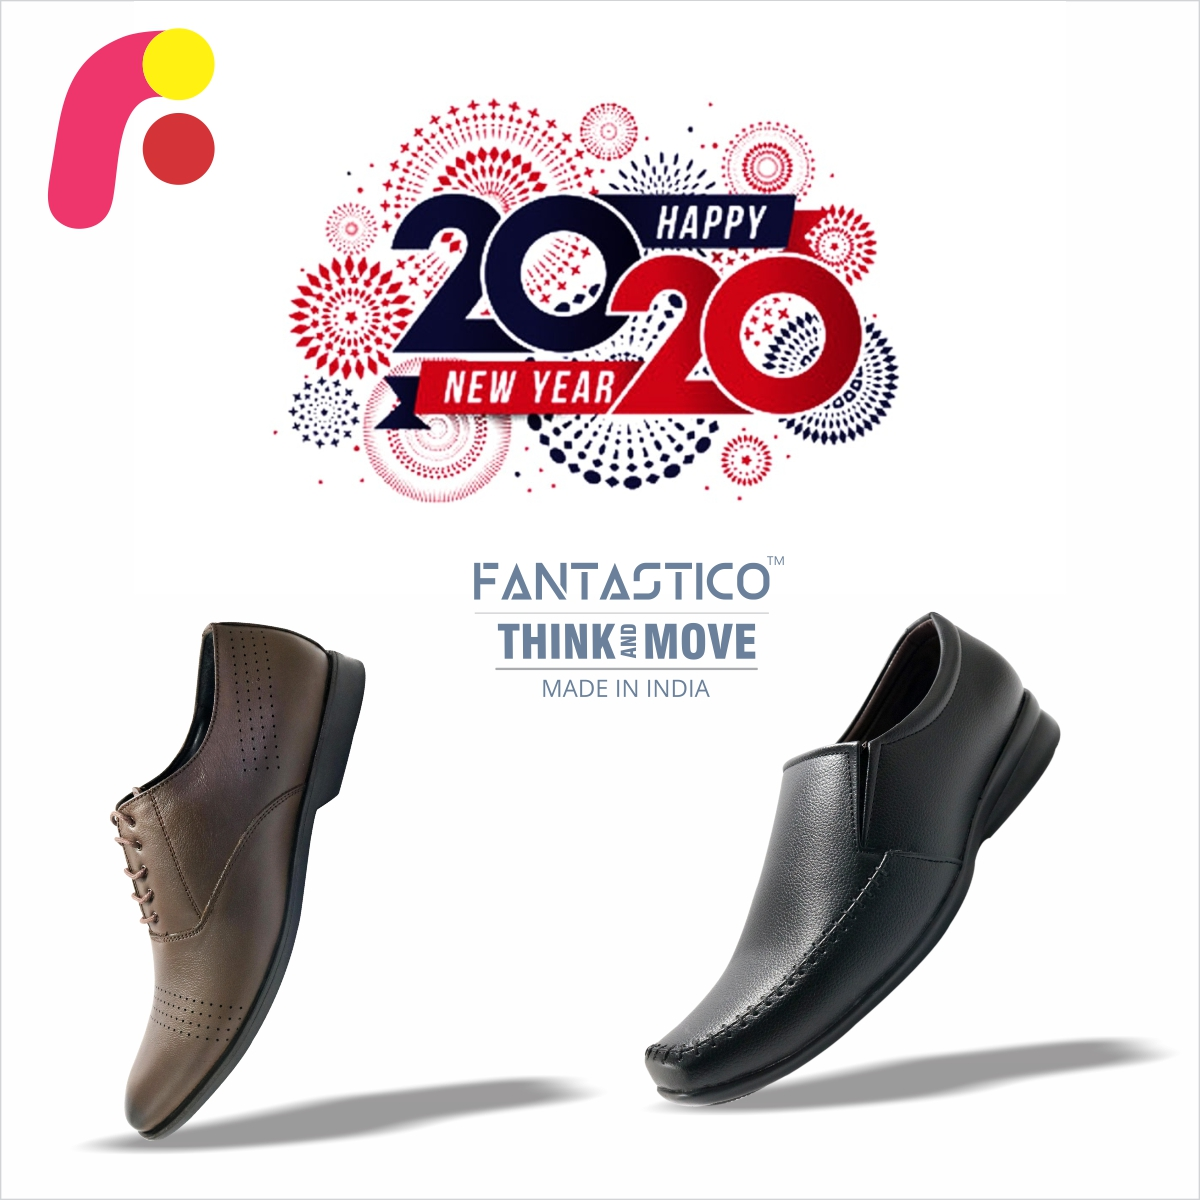 """#HappyNewYear2020 """"Your present circumstances don't determine where you can go. They merely determine where you start.""""Great Brand. Smart Prices.#Fantastico #Shoes #designs #Brand #Janmashtami #FantasticoShoes #Handcrafted #shoes #MenShoes #MenFootwear #MenFormalShoes"""